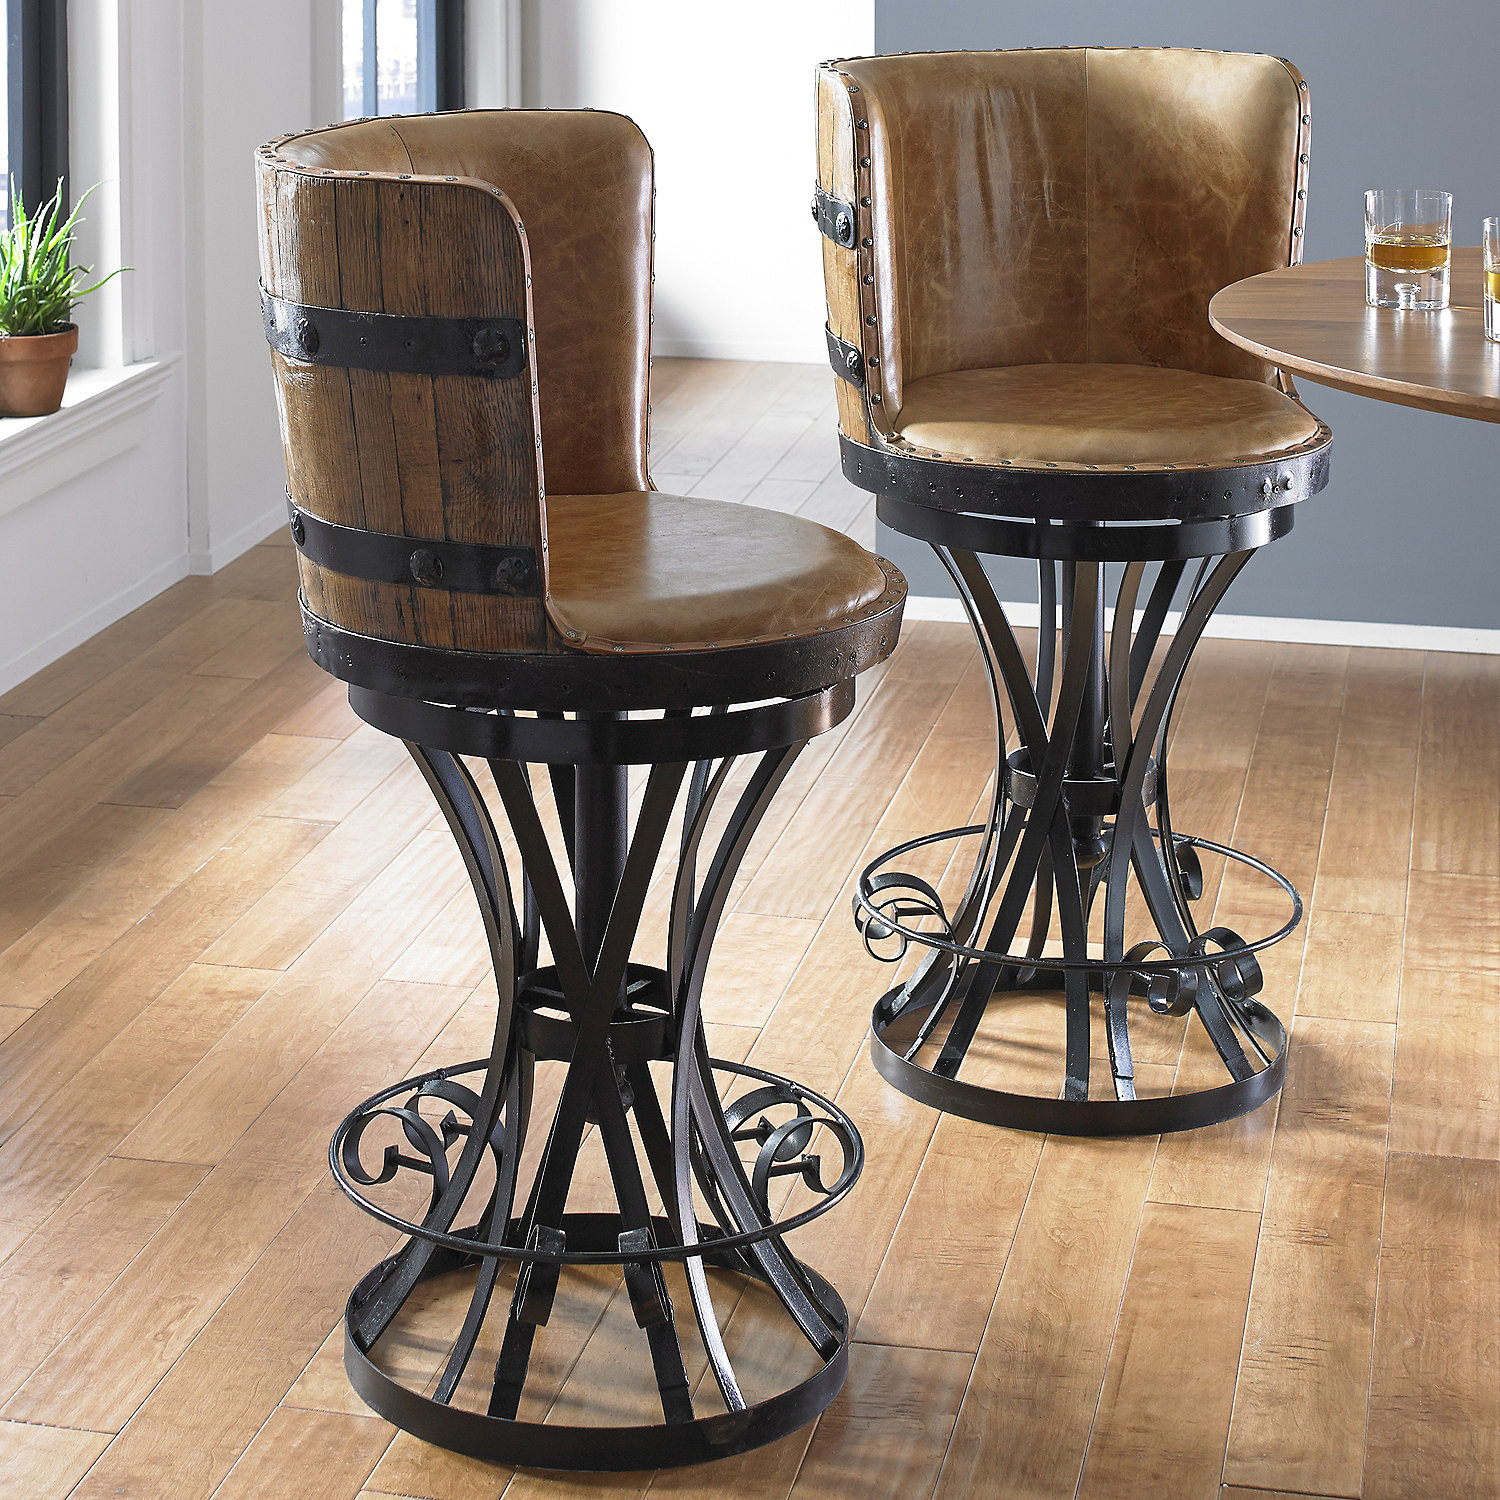 ... Stool with Leather Seat. SALE. Preparing Zoom & Tequila Barrel Stave Stool with Leather Seat - Wine Enthusiast islam-shia.org